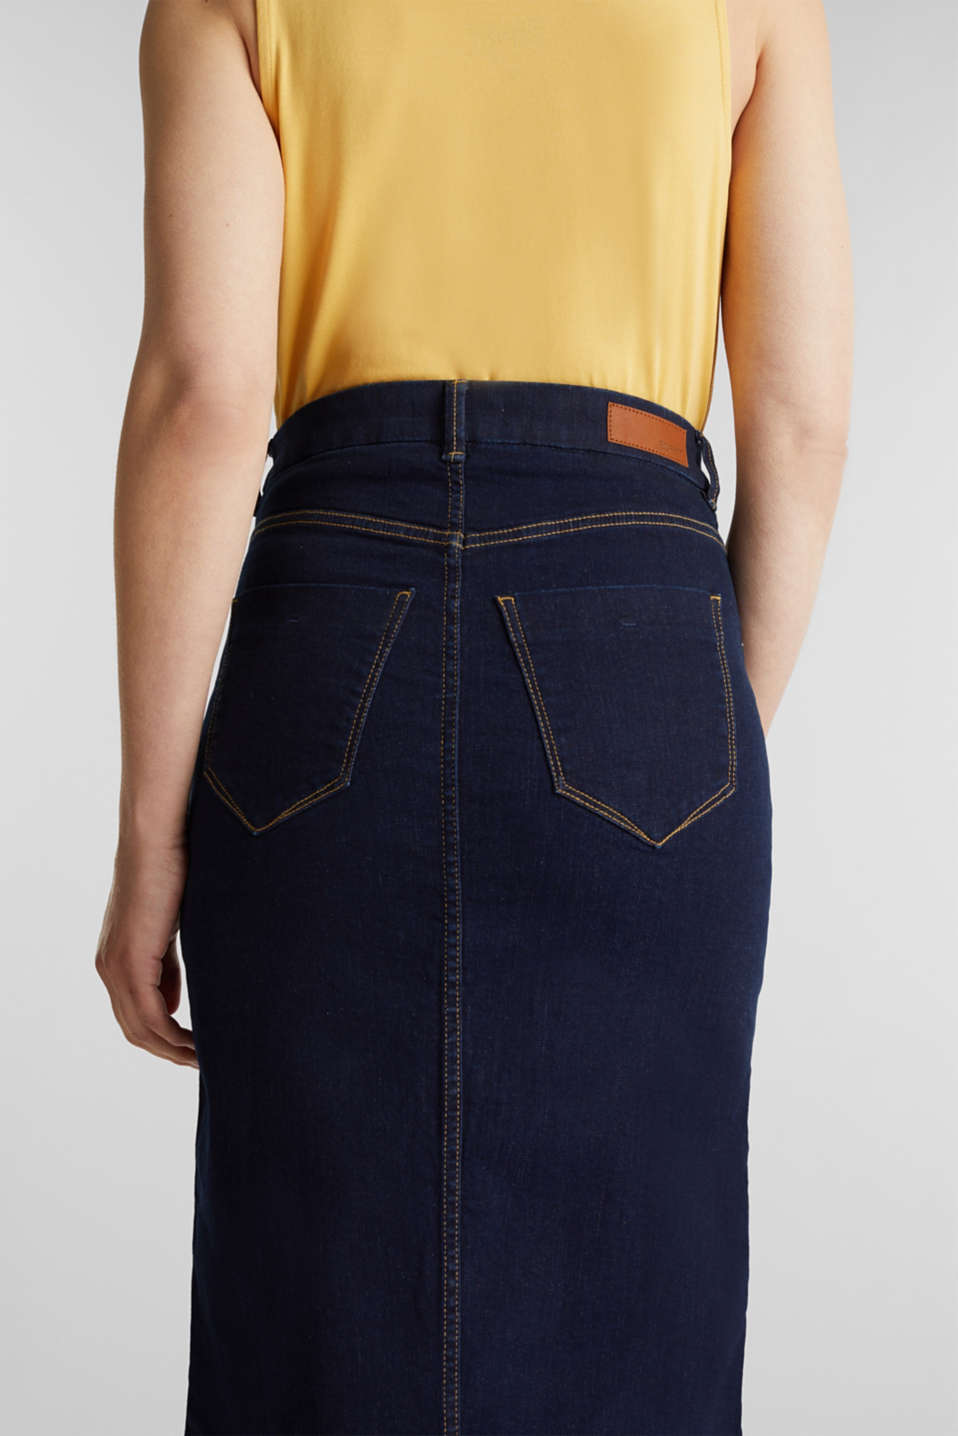 Denim skirt with stretch for comfort, BLUE RINSE, detail image number 4